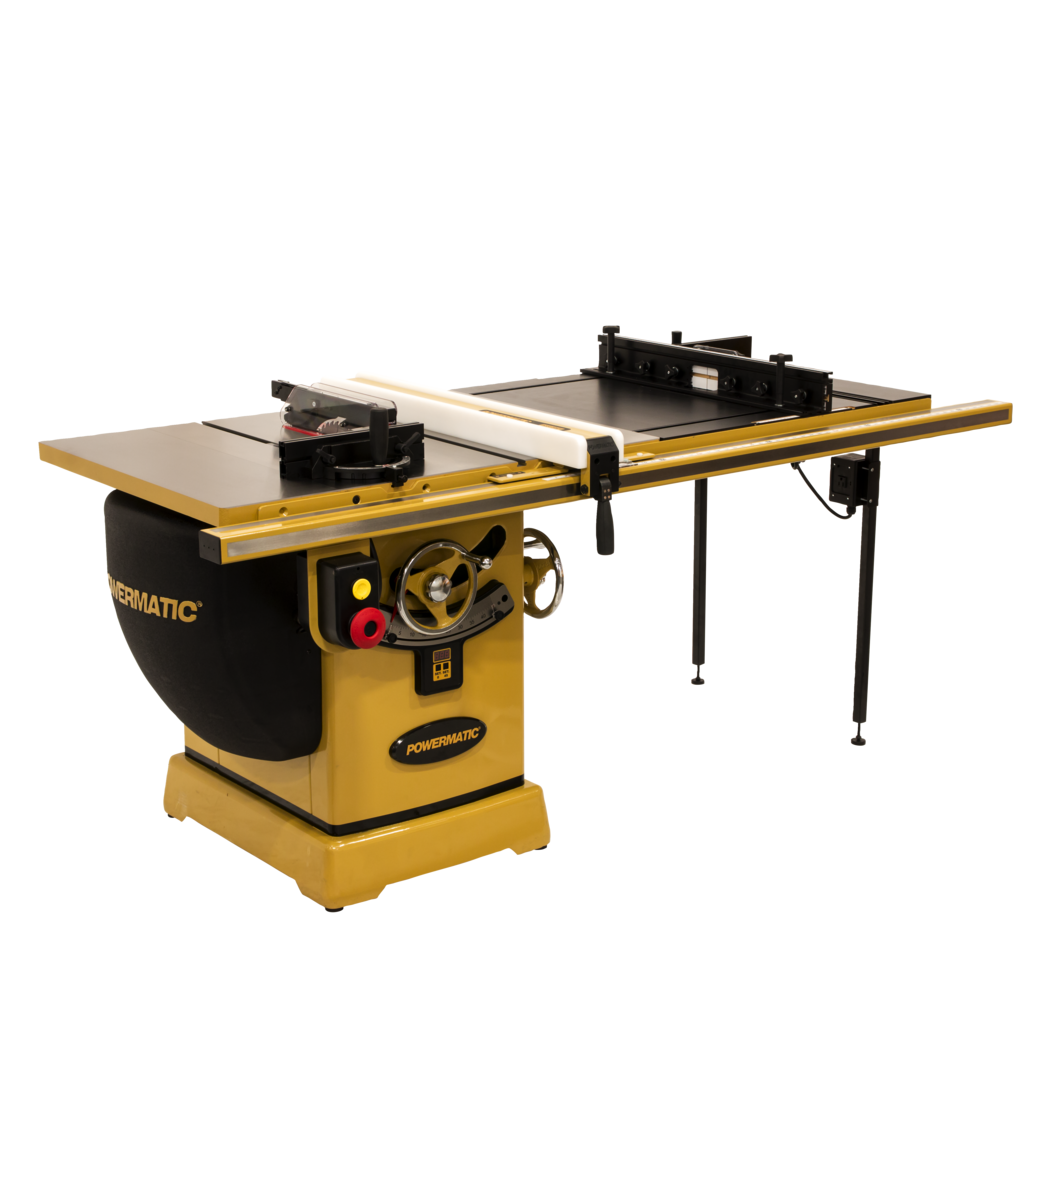 """2000B table saw - 5HP 3PH 230/460V 50"""" RIP w/Accu-Fence & Router Lift"""